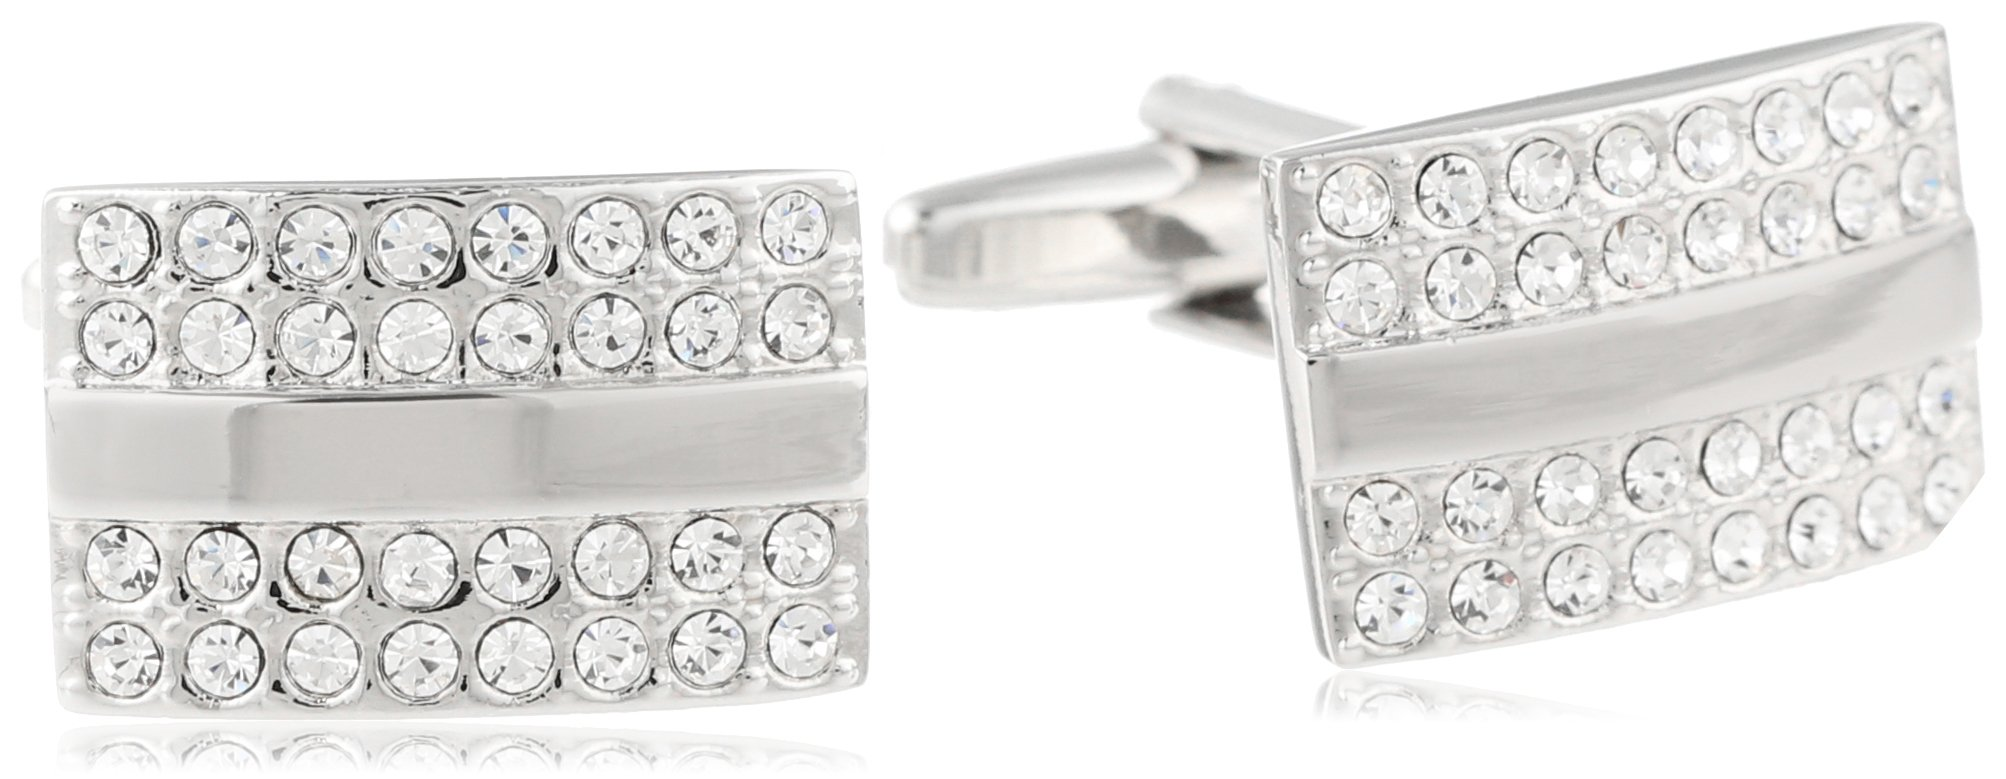 Stacy Adams Men's Silver Rectangle Cuff Link With Crystals, Silver/Crystal, One Size